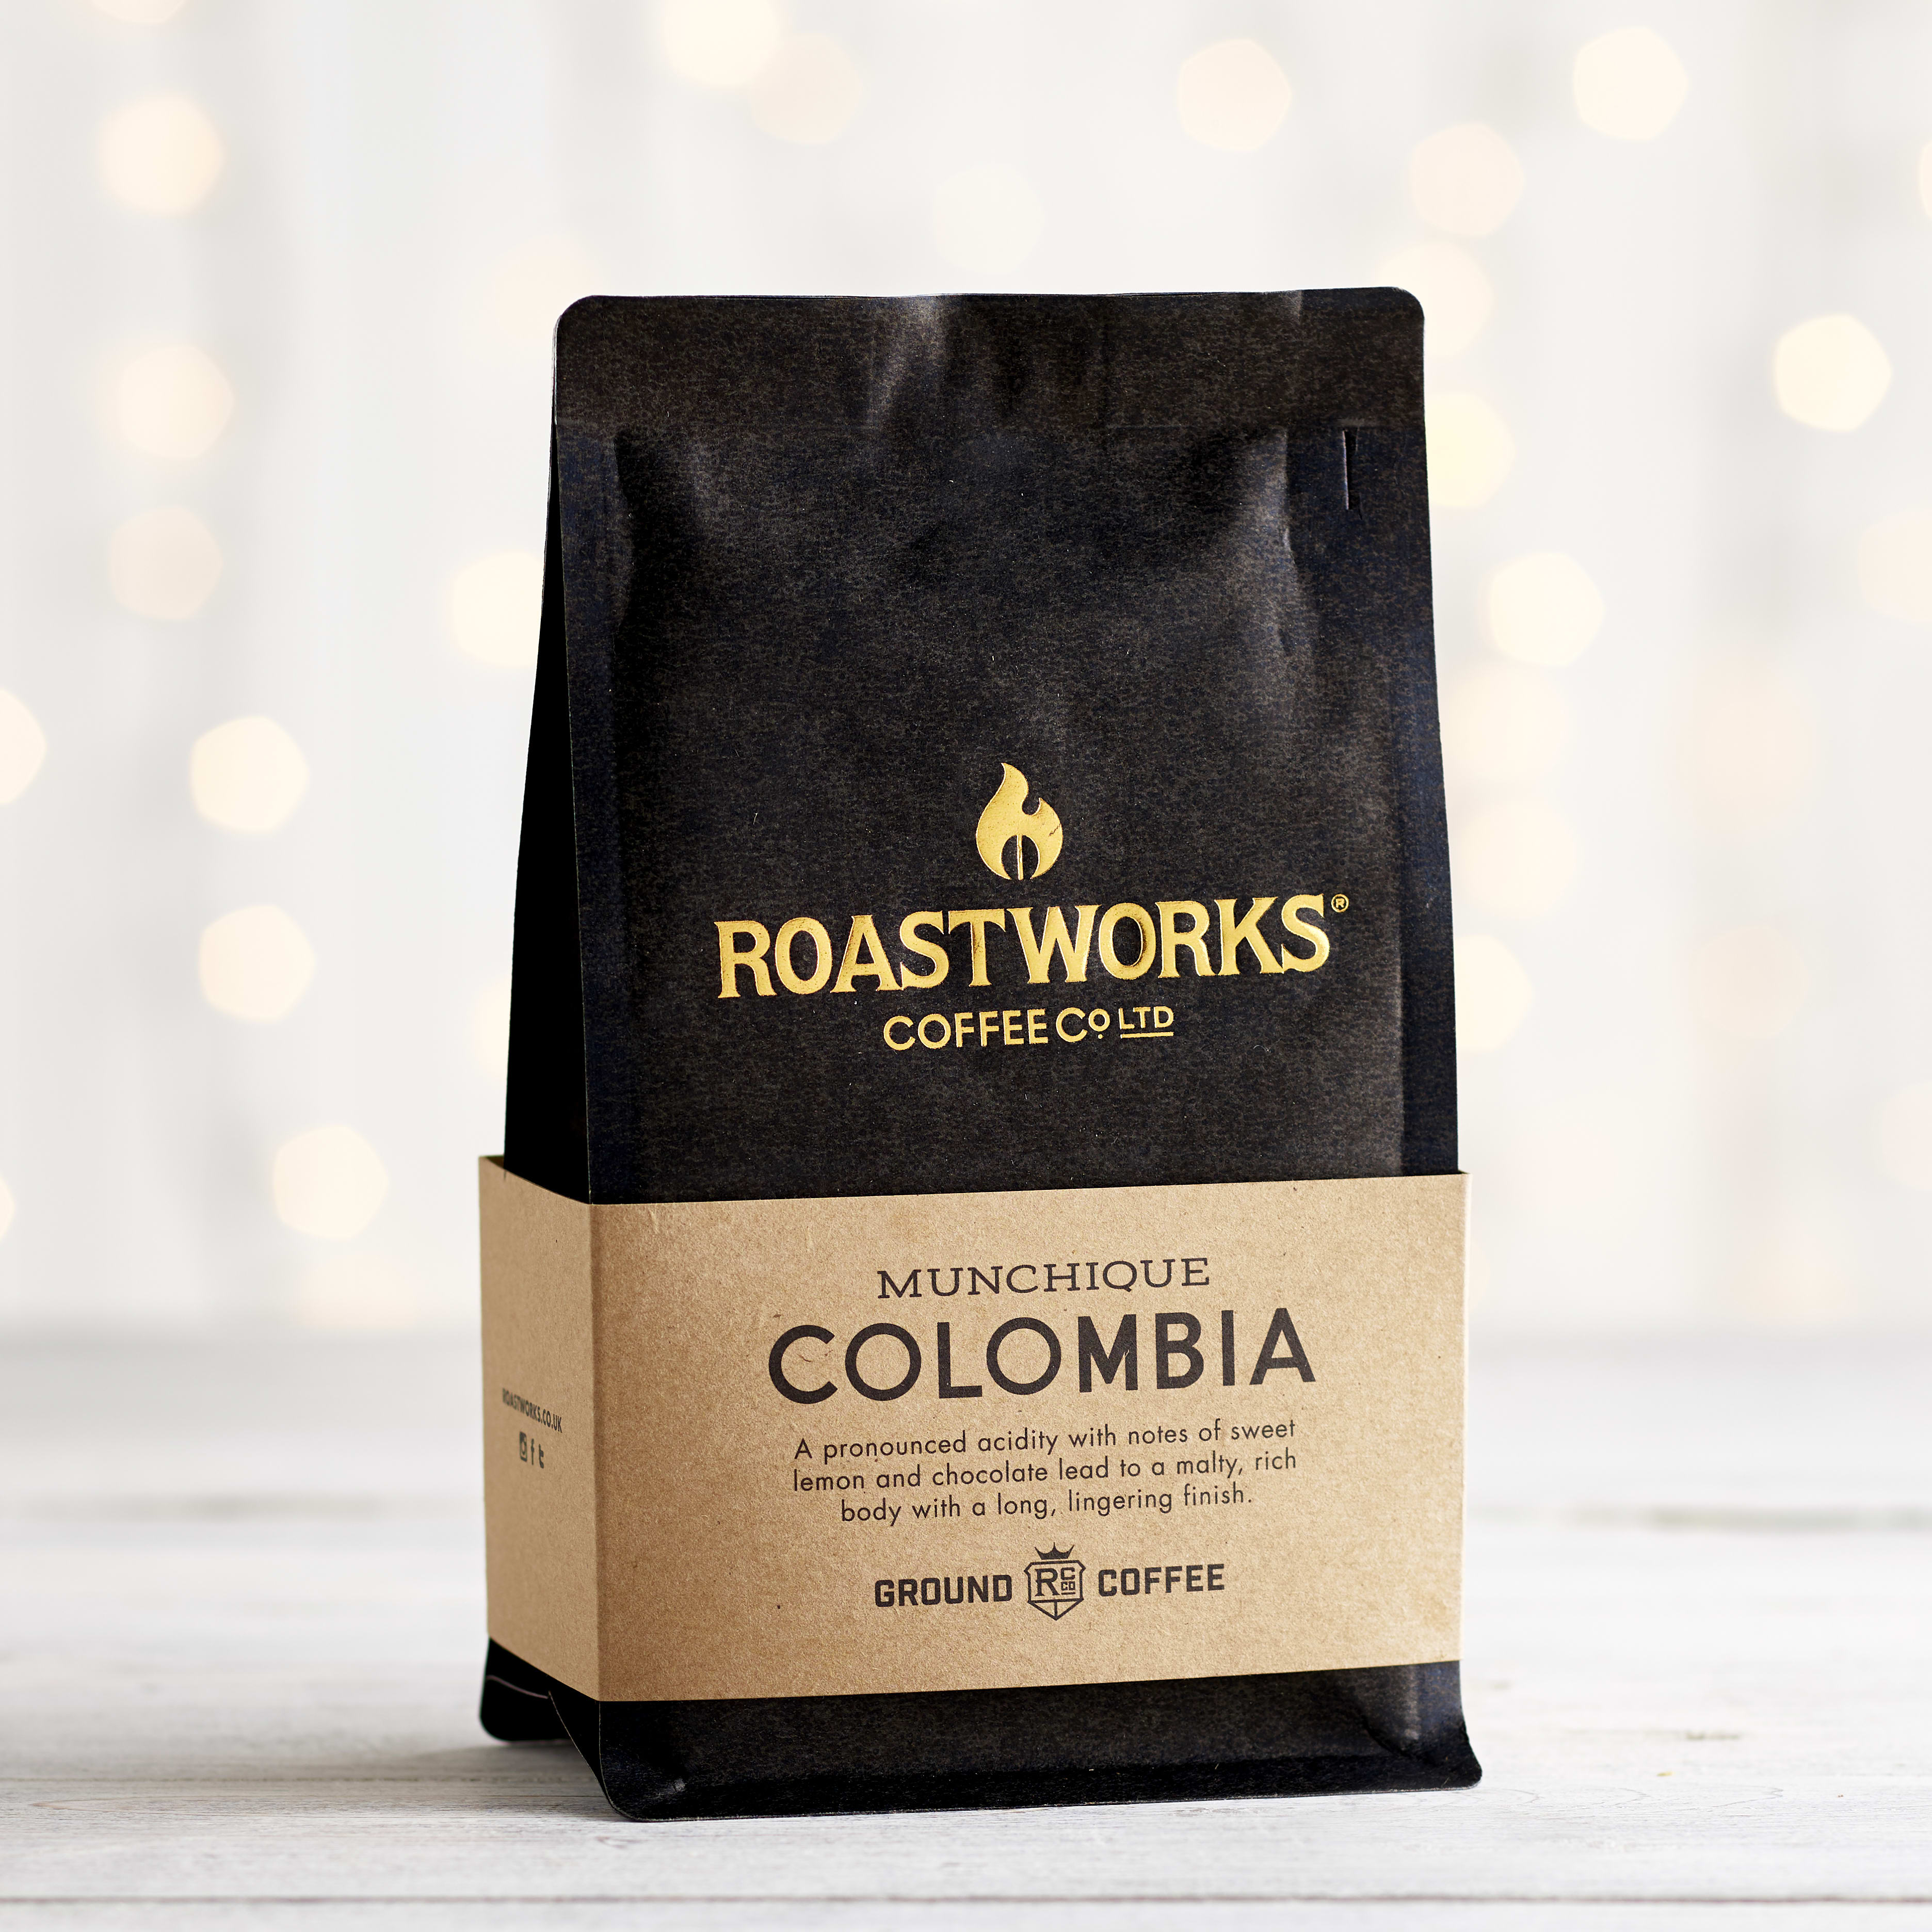 Roastworks Colombian Ground Coffee, 200g